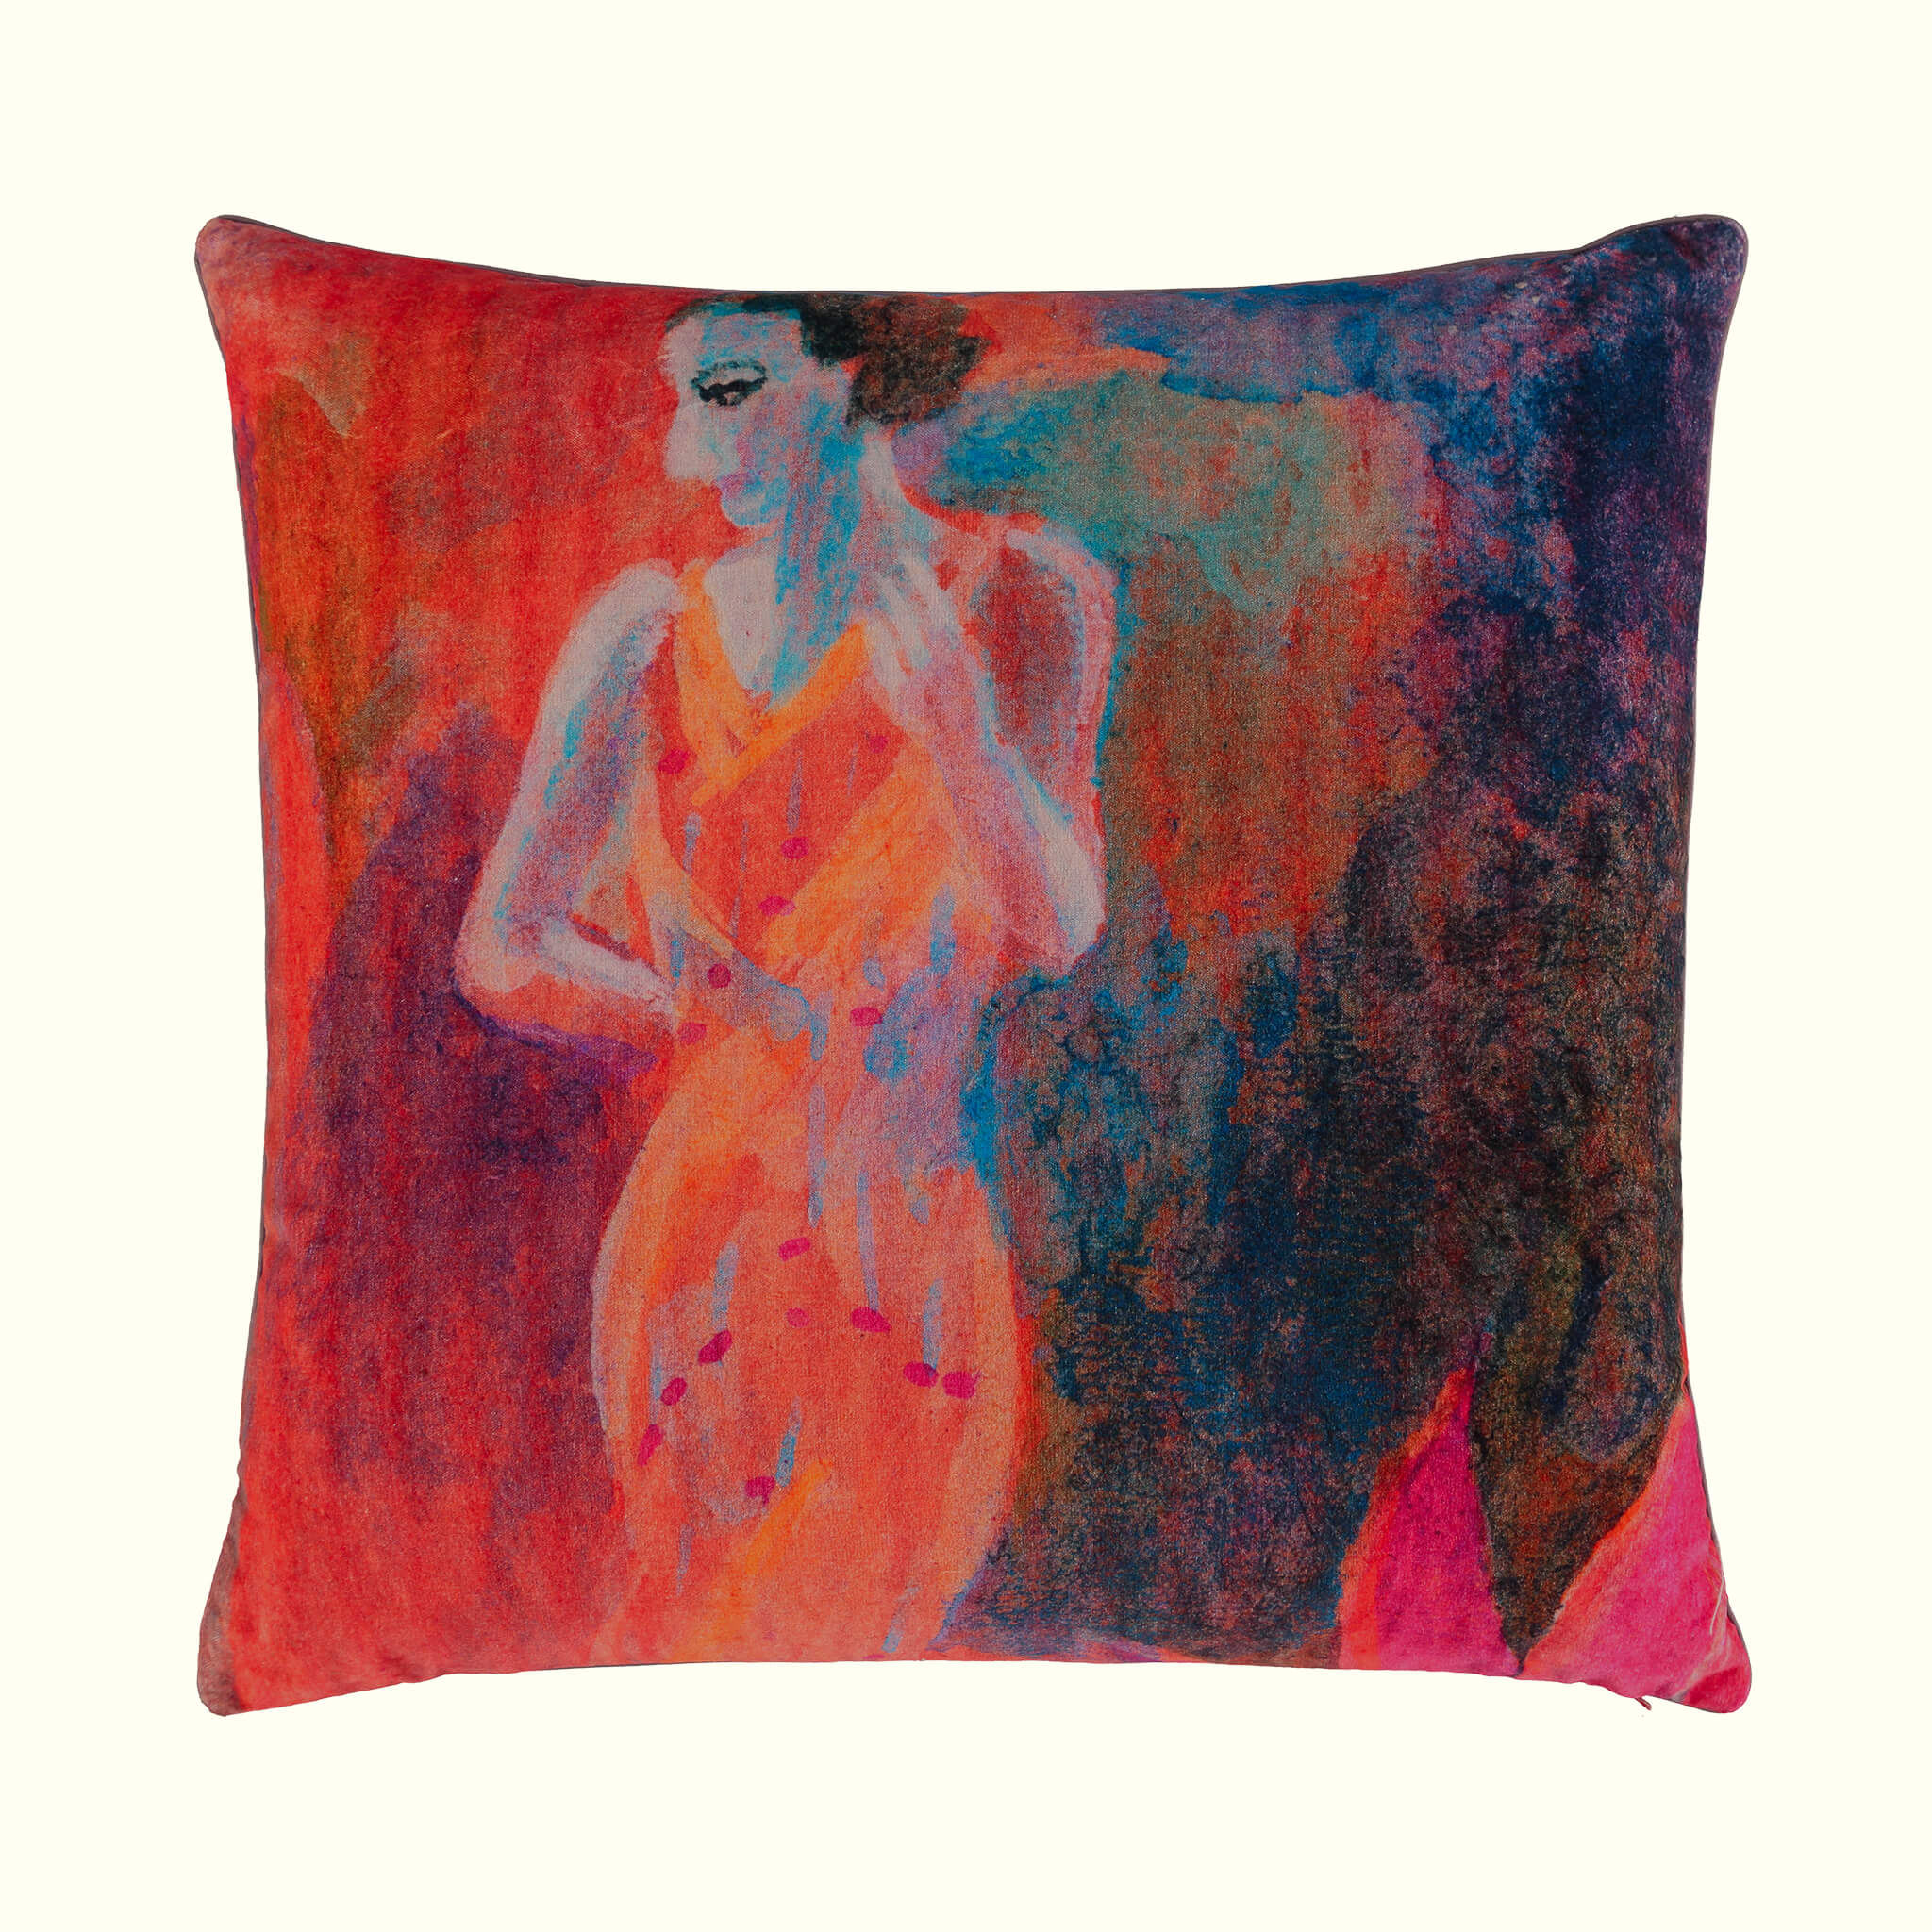 A luxury British cotton velvet cushion by GVE in vermillion Conversation print design.